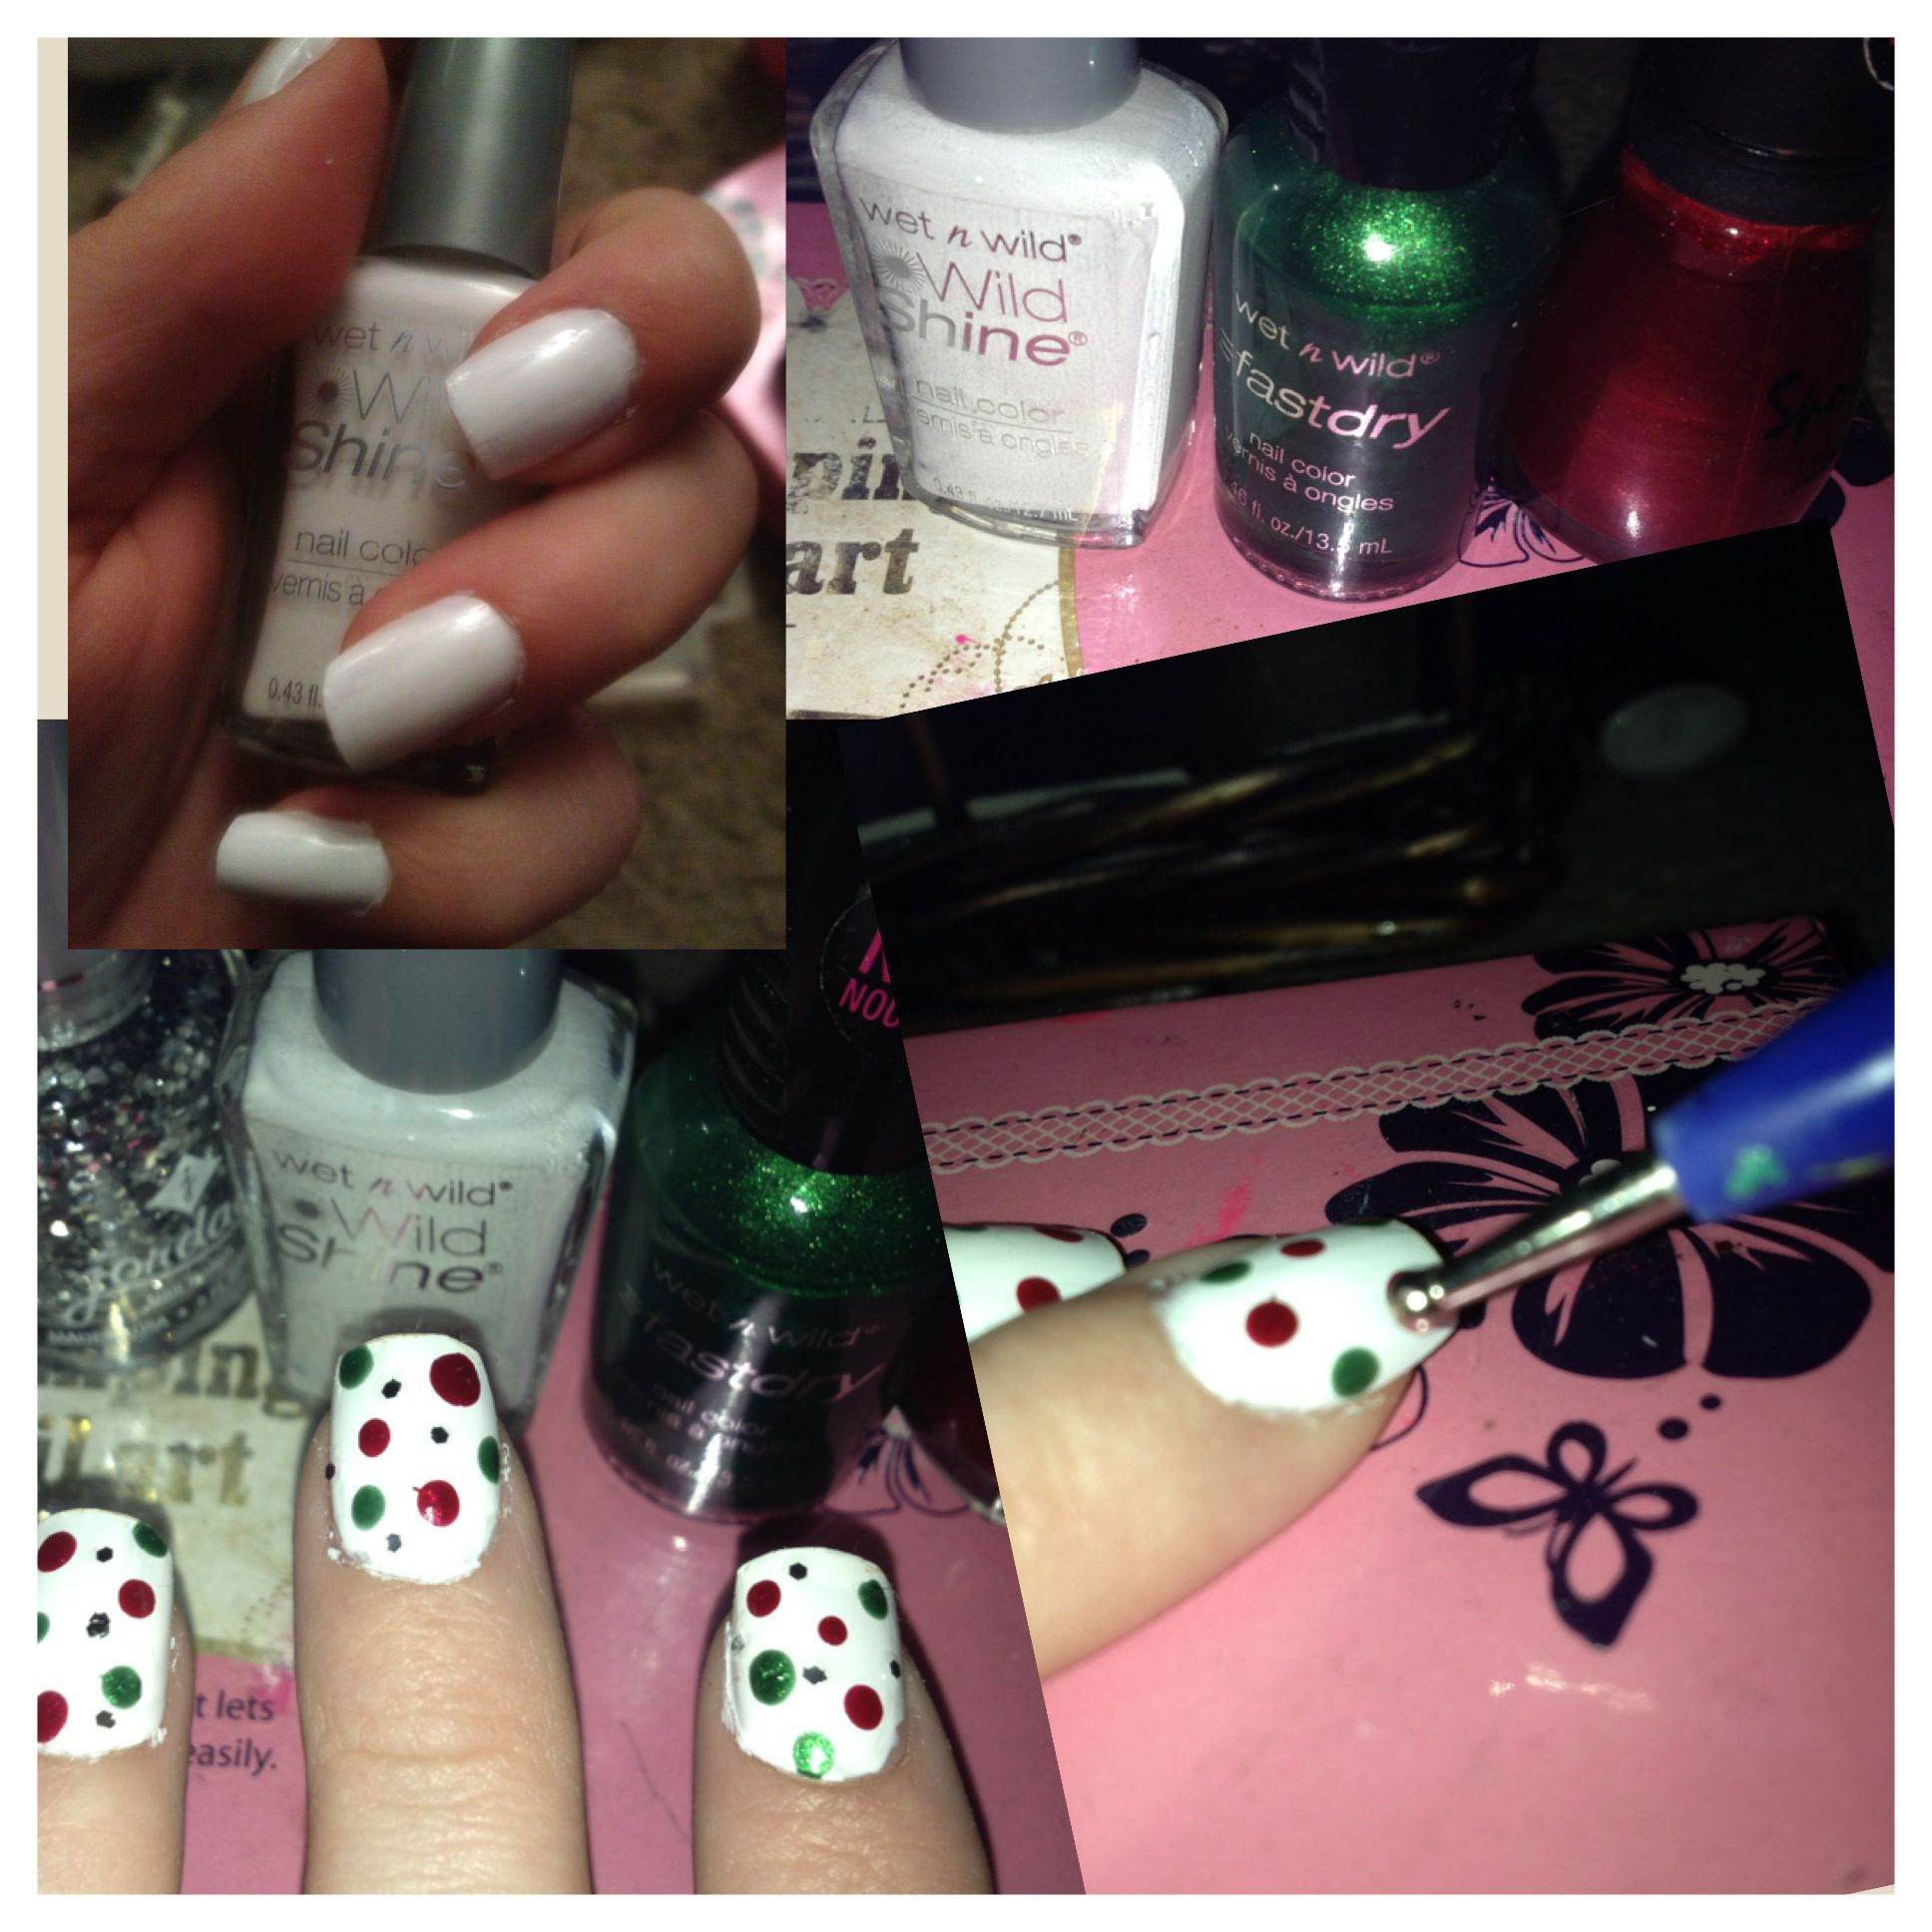 Easy Christmas Nails Paint White Base And Use A Dotter To Make Polkadots With Green Red Nail Polish I Added Some Silver Glitter For Little Extra